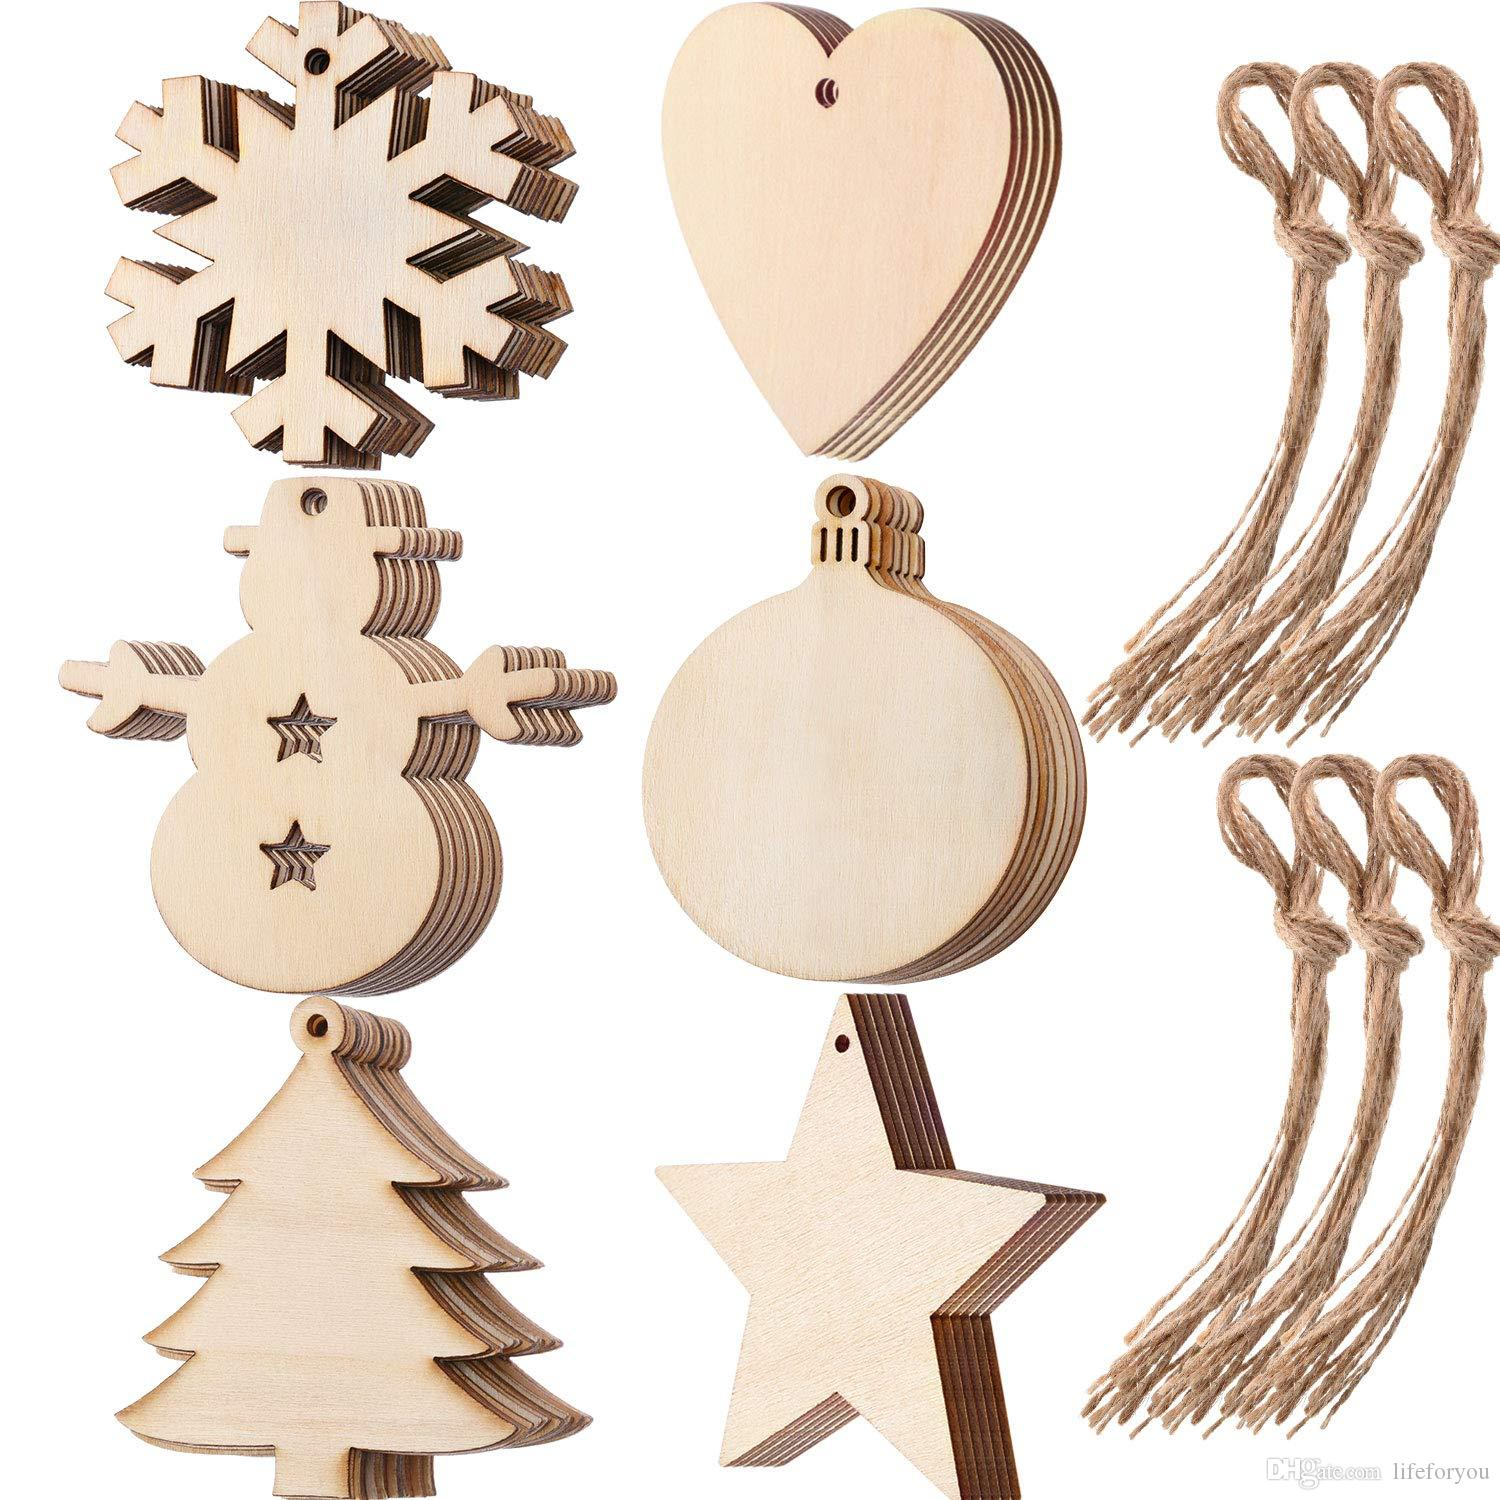 10-Packed wood laser christmas decorations Xmas ornaments outdoor christmas decorations wood hollow snowflake heart ball star tree ornament